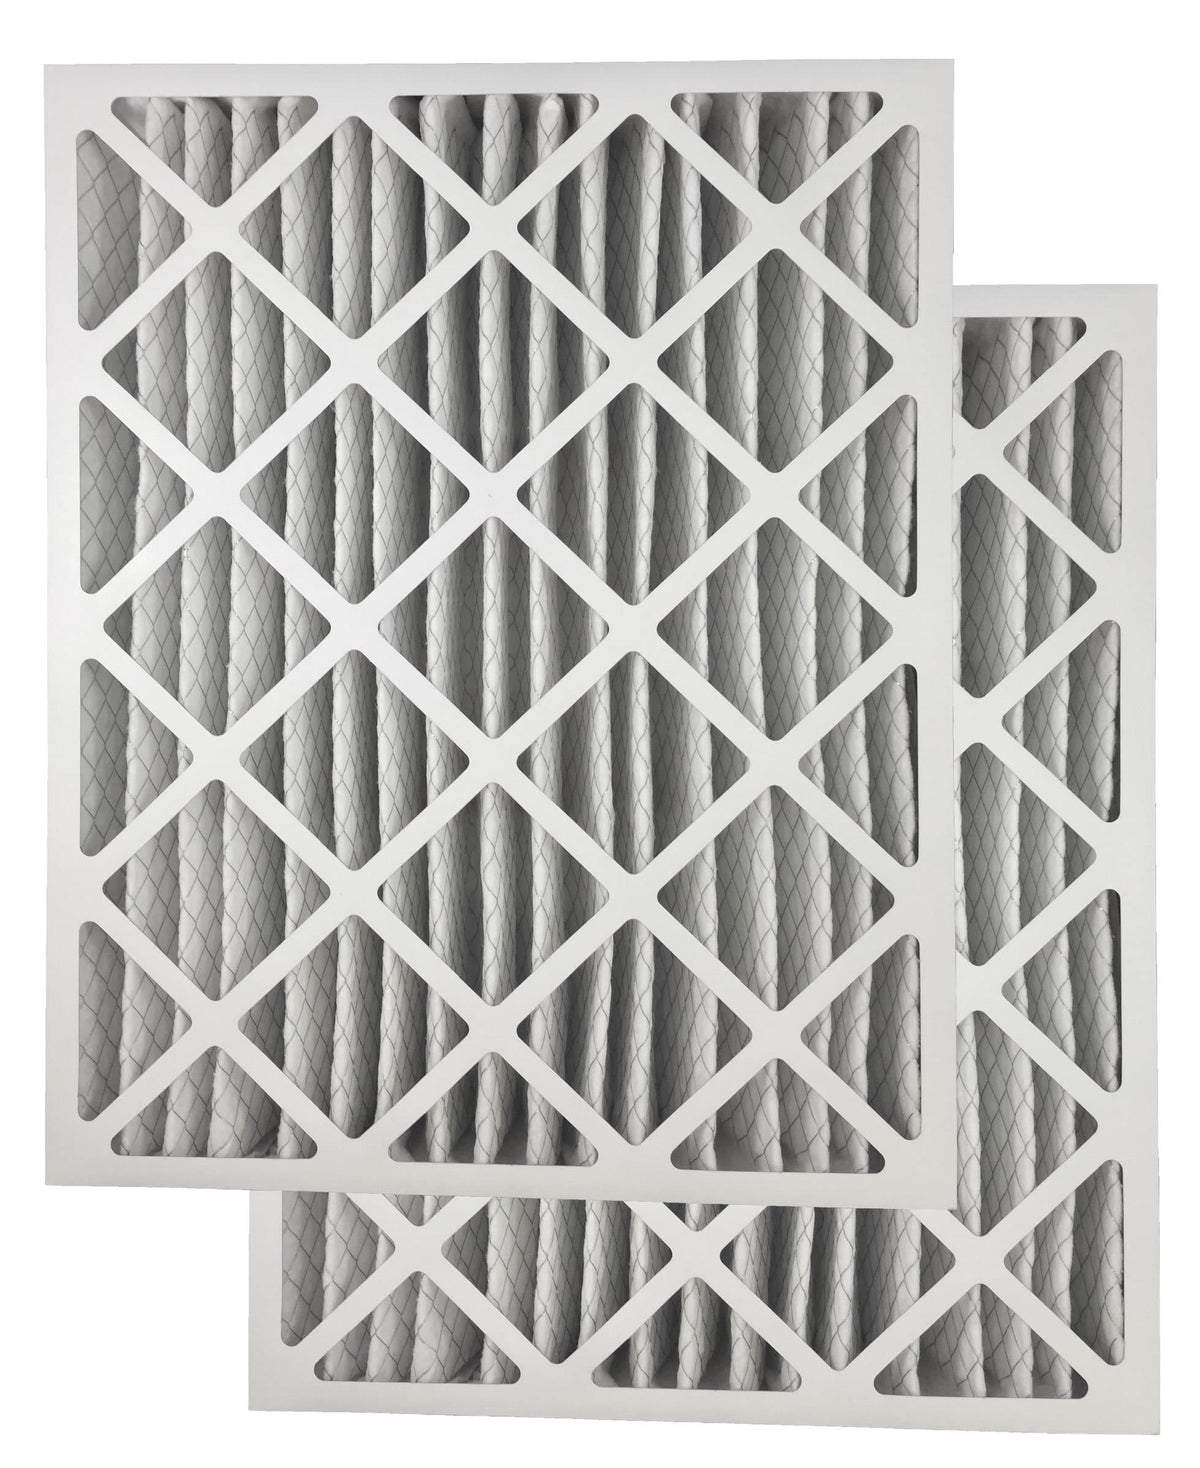 Atomic 20X25X4 FC200E1037 Honeywell Filter Replacement MERV 13 - 2 Pack